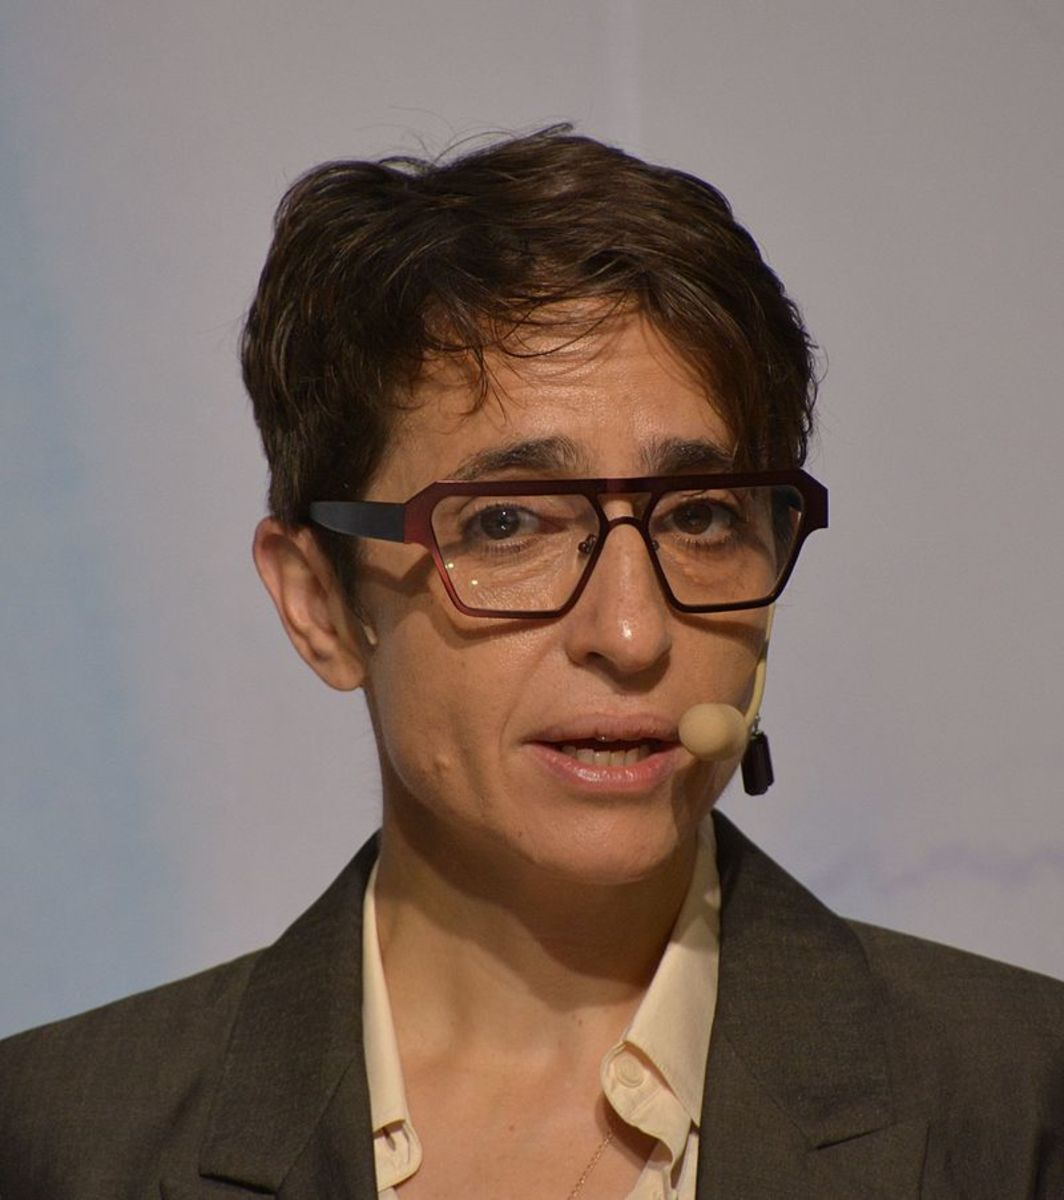 No Princess Leia hair whorls for Man Without a Face author Masha Gessen.